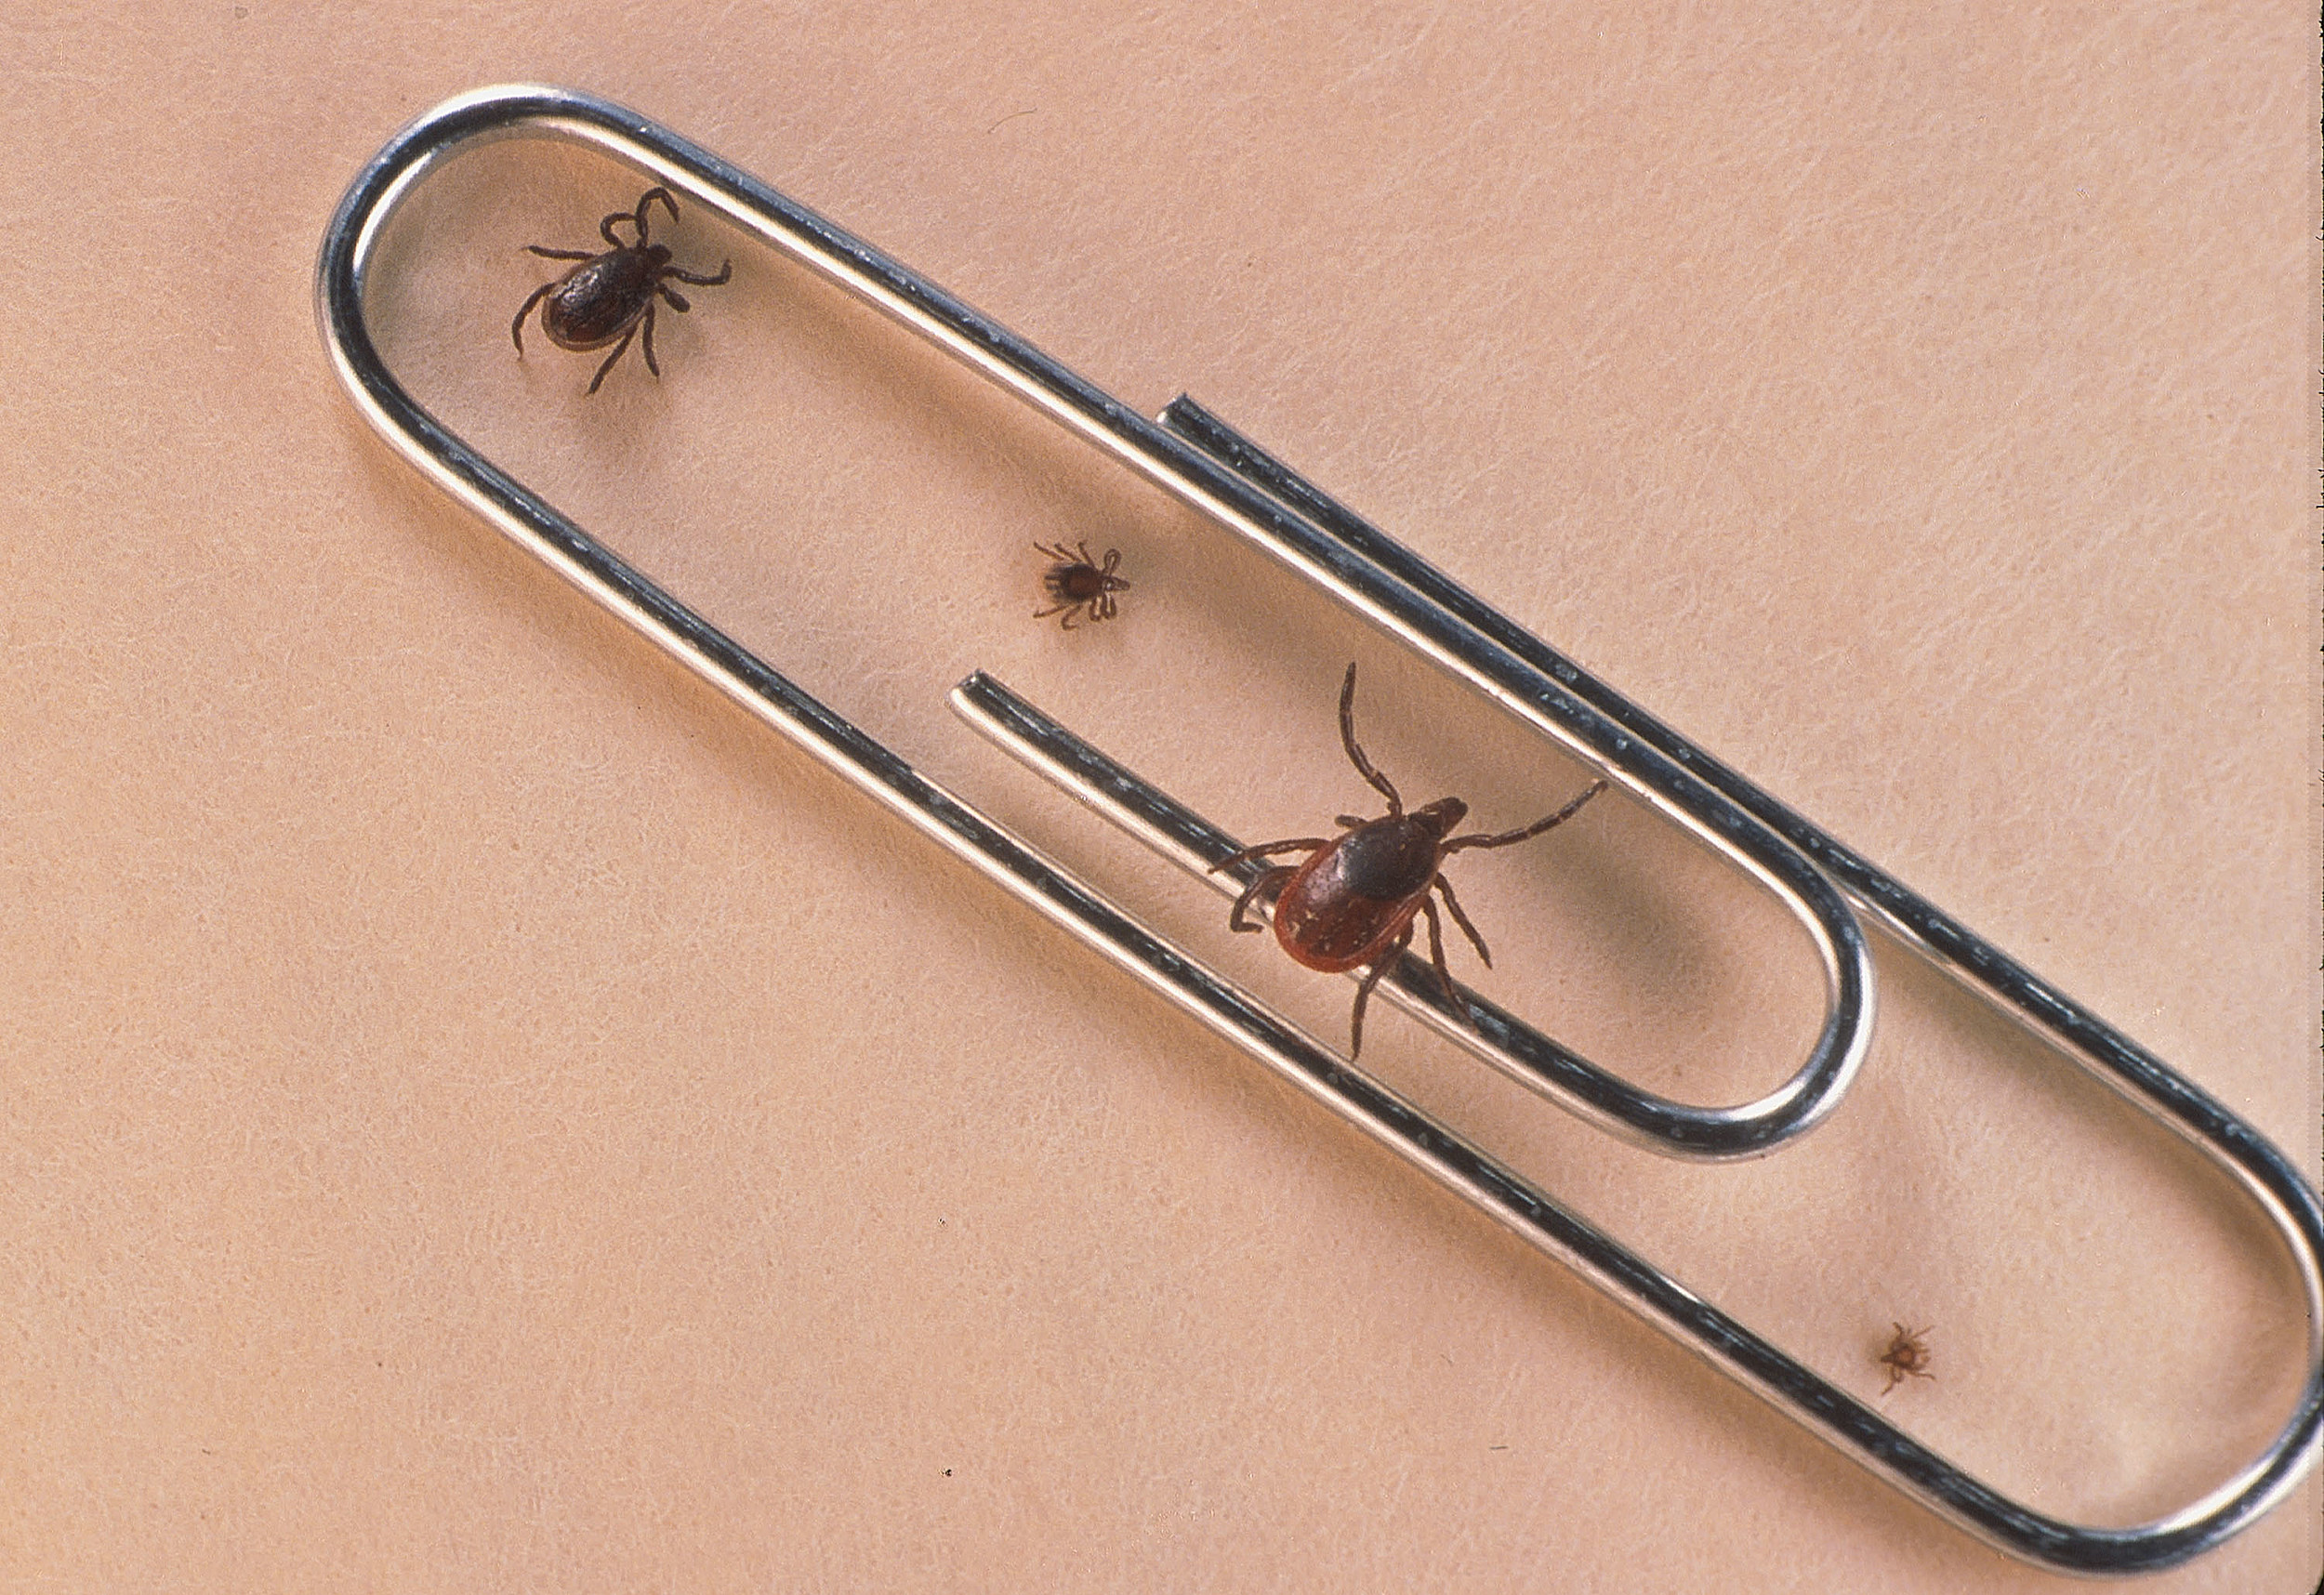 5 Easy Ways To Get Rid Of Ticks In Your Yard